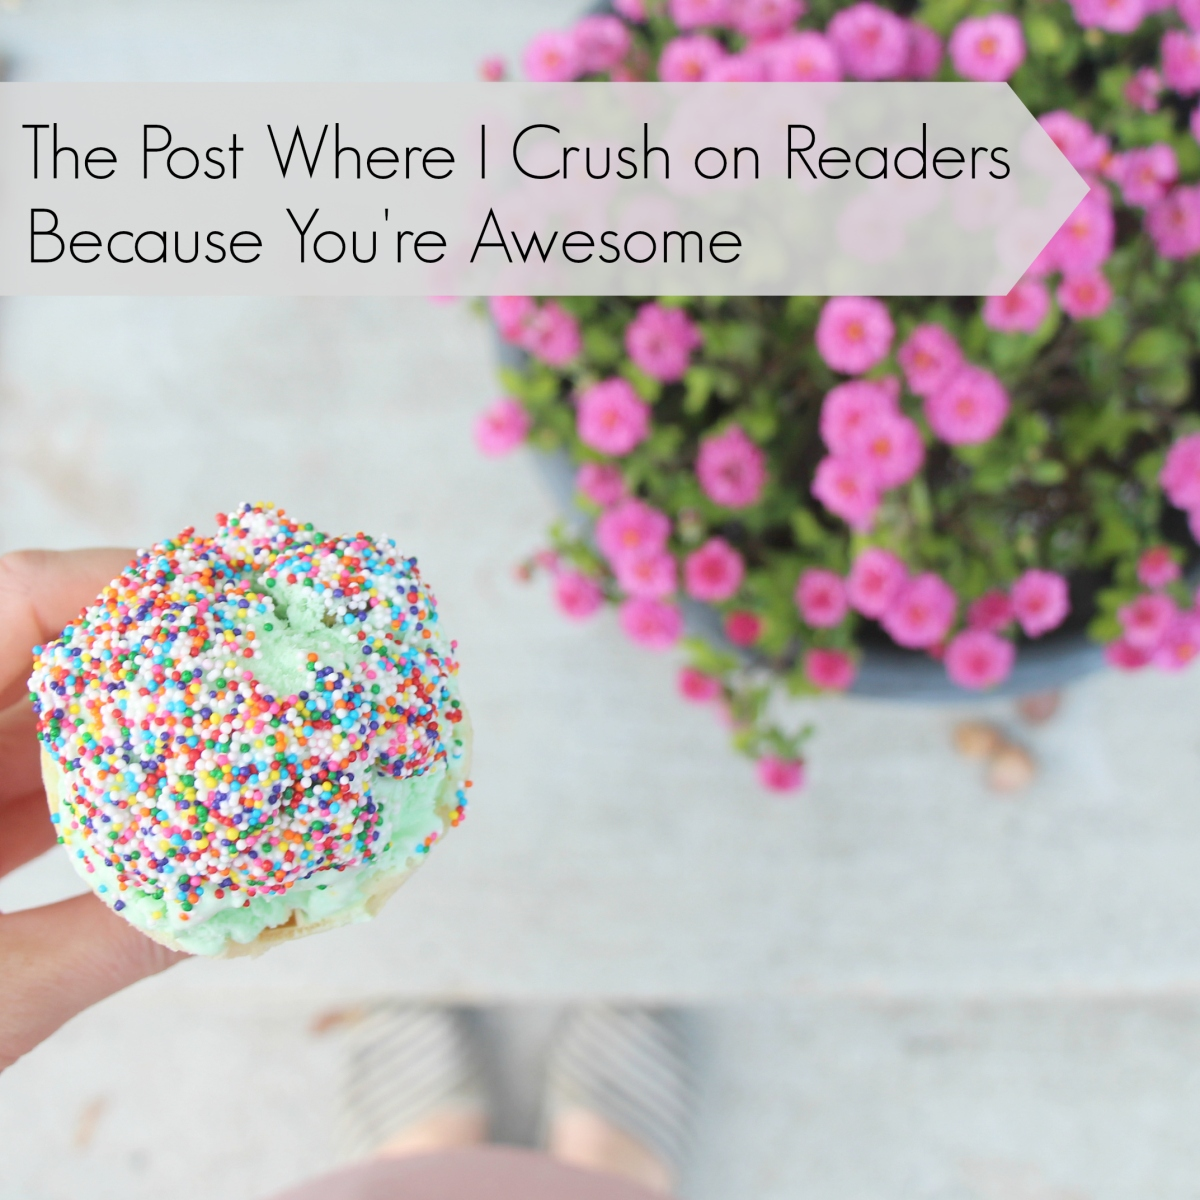 The post where I crush on readers because you're awesome